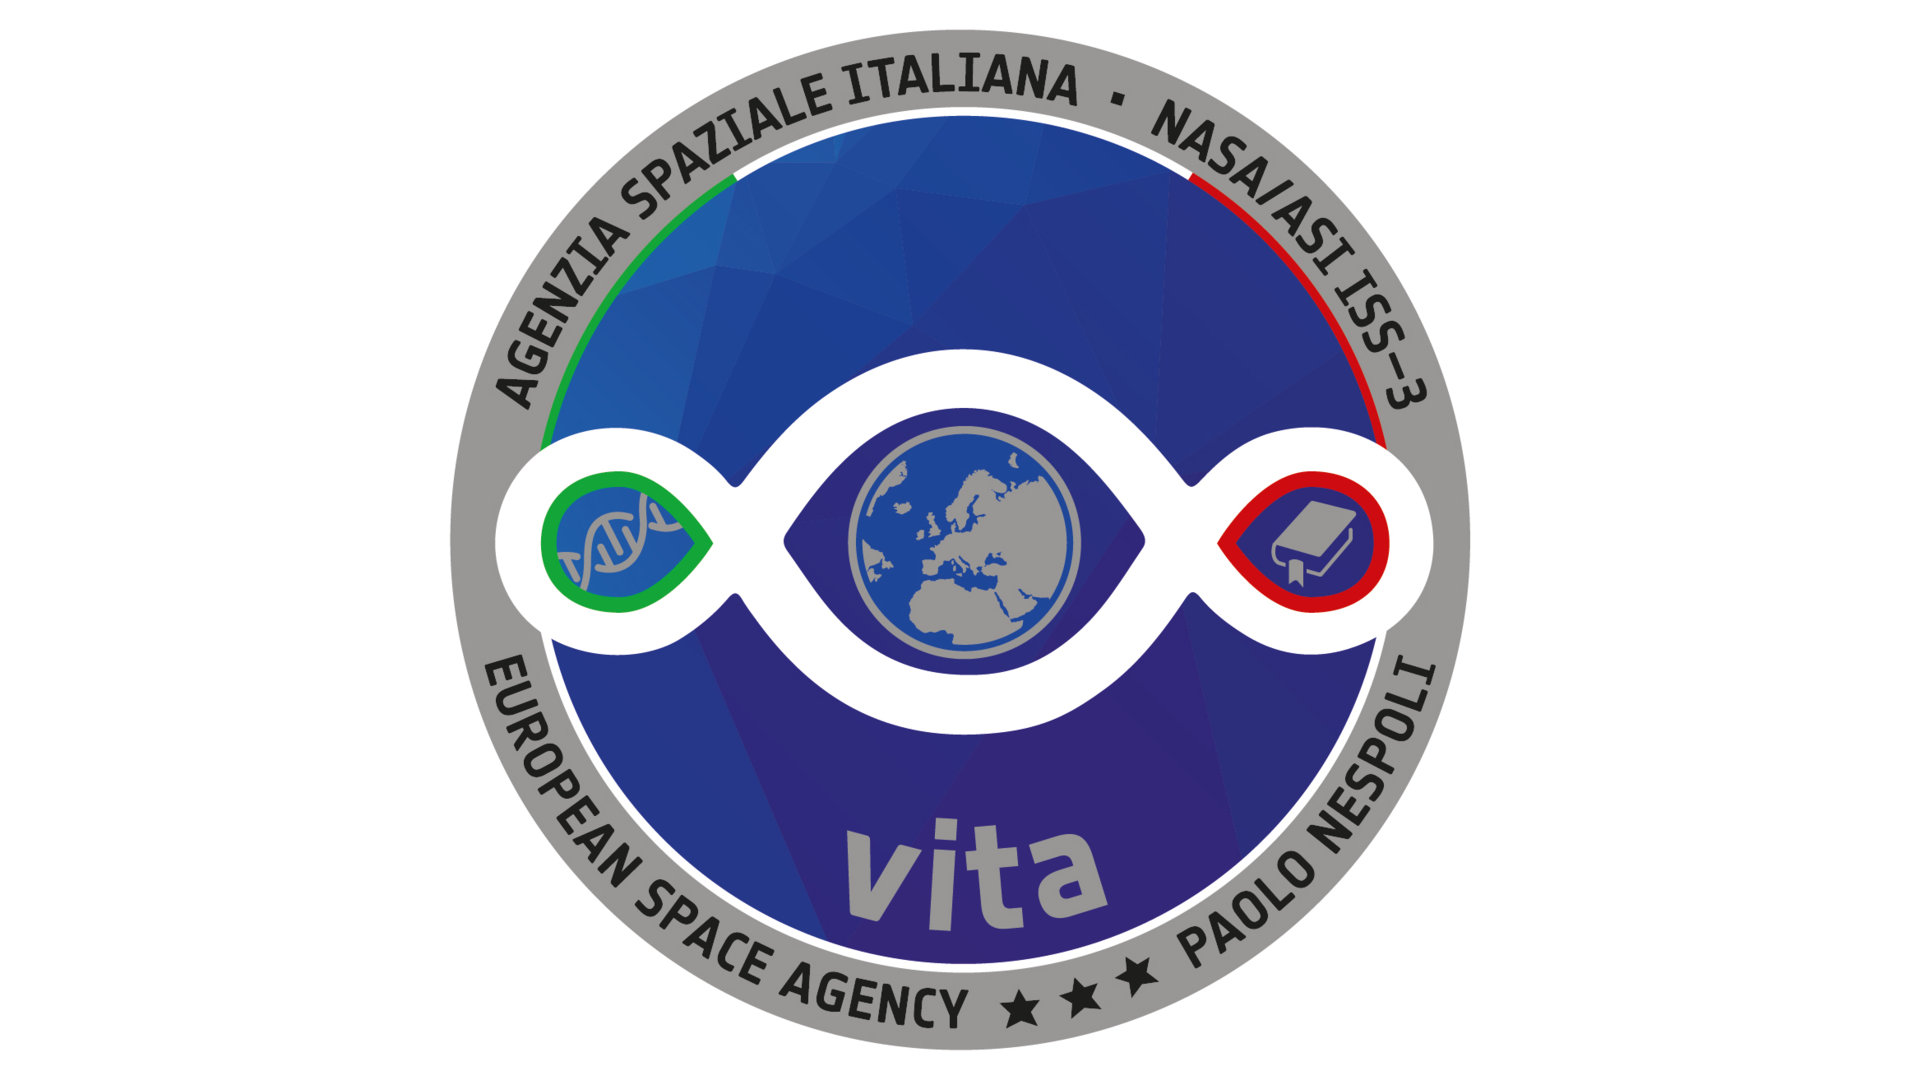 http://m.esa.int/var/esa/storage/images/esa_multimedia/images/2016/11/vita_logo/16531167-2-eng-GB/Vita_logo_highlight_mob.jpg